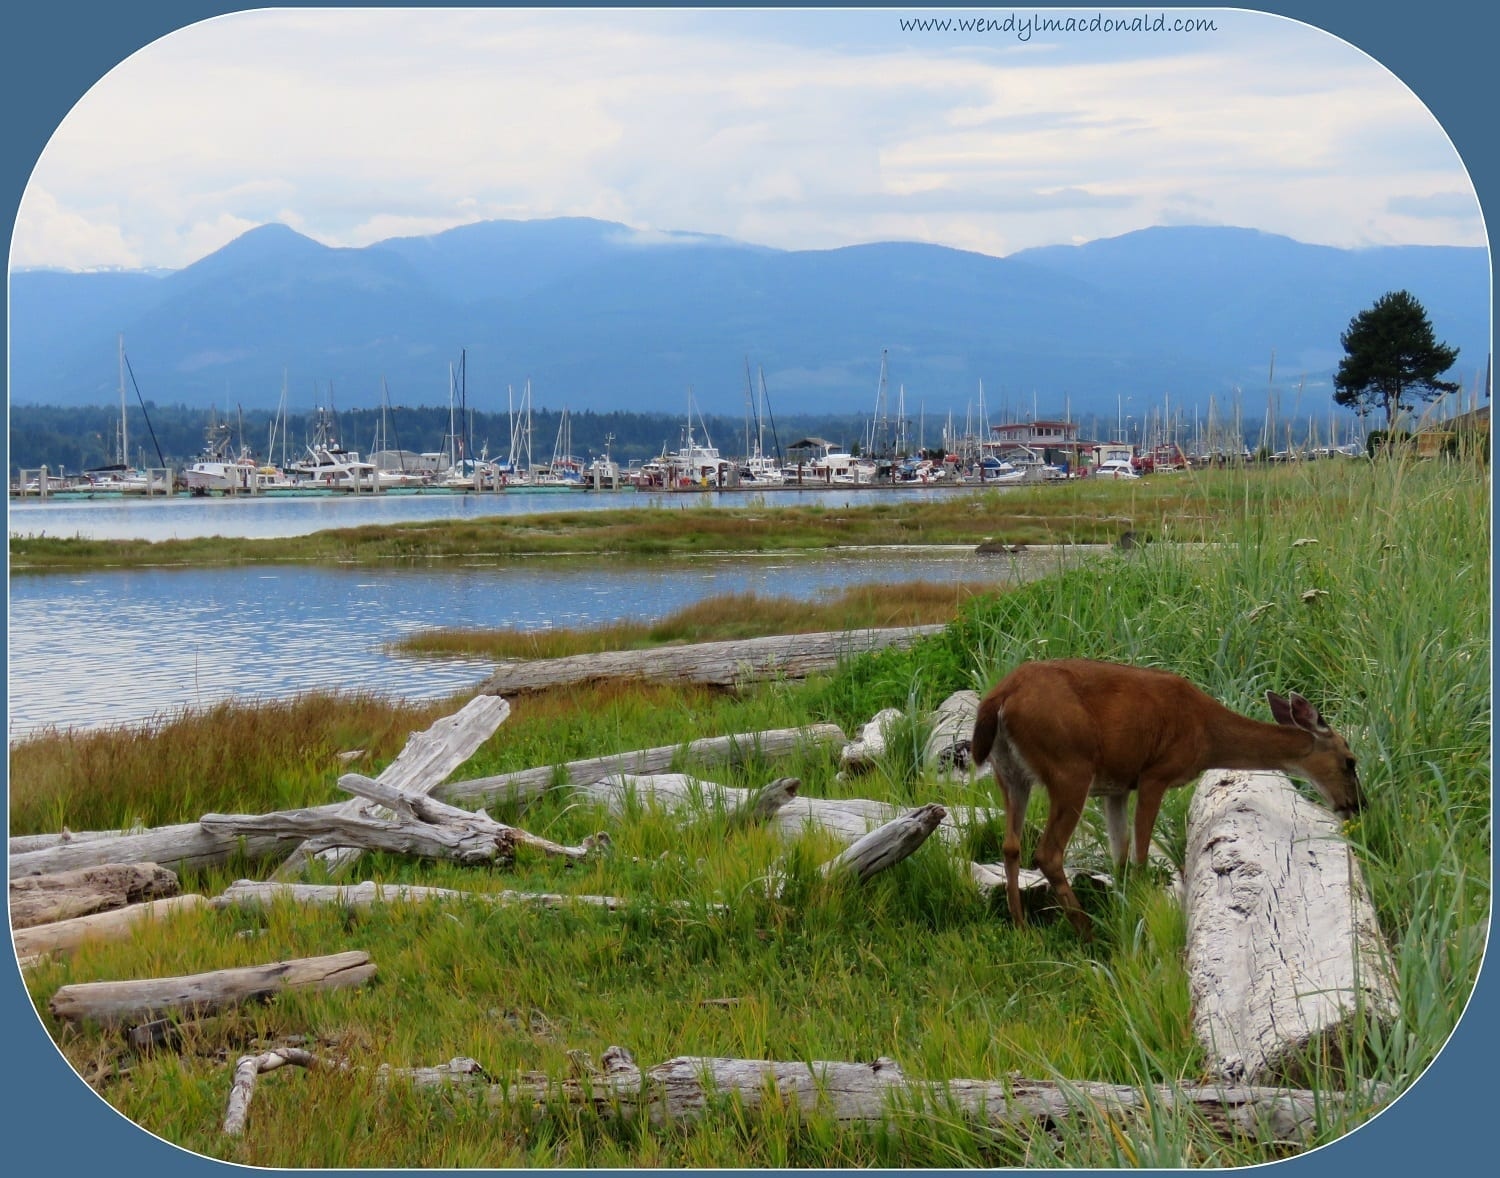 Deer near an inlet with boat and mountains behind, photo credit: Wendy MacDonald